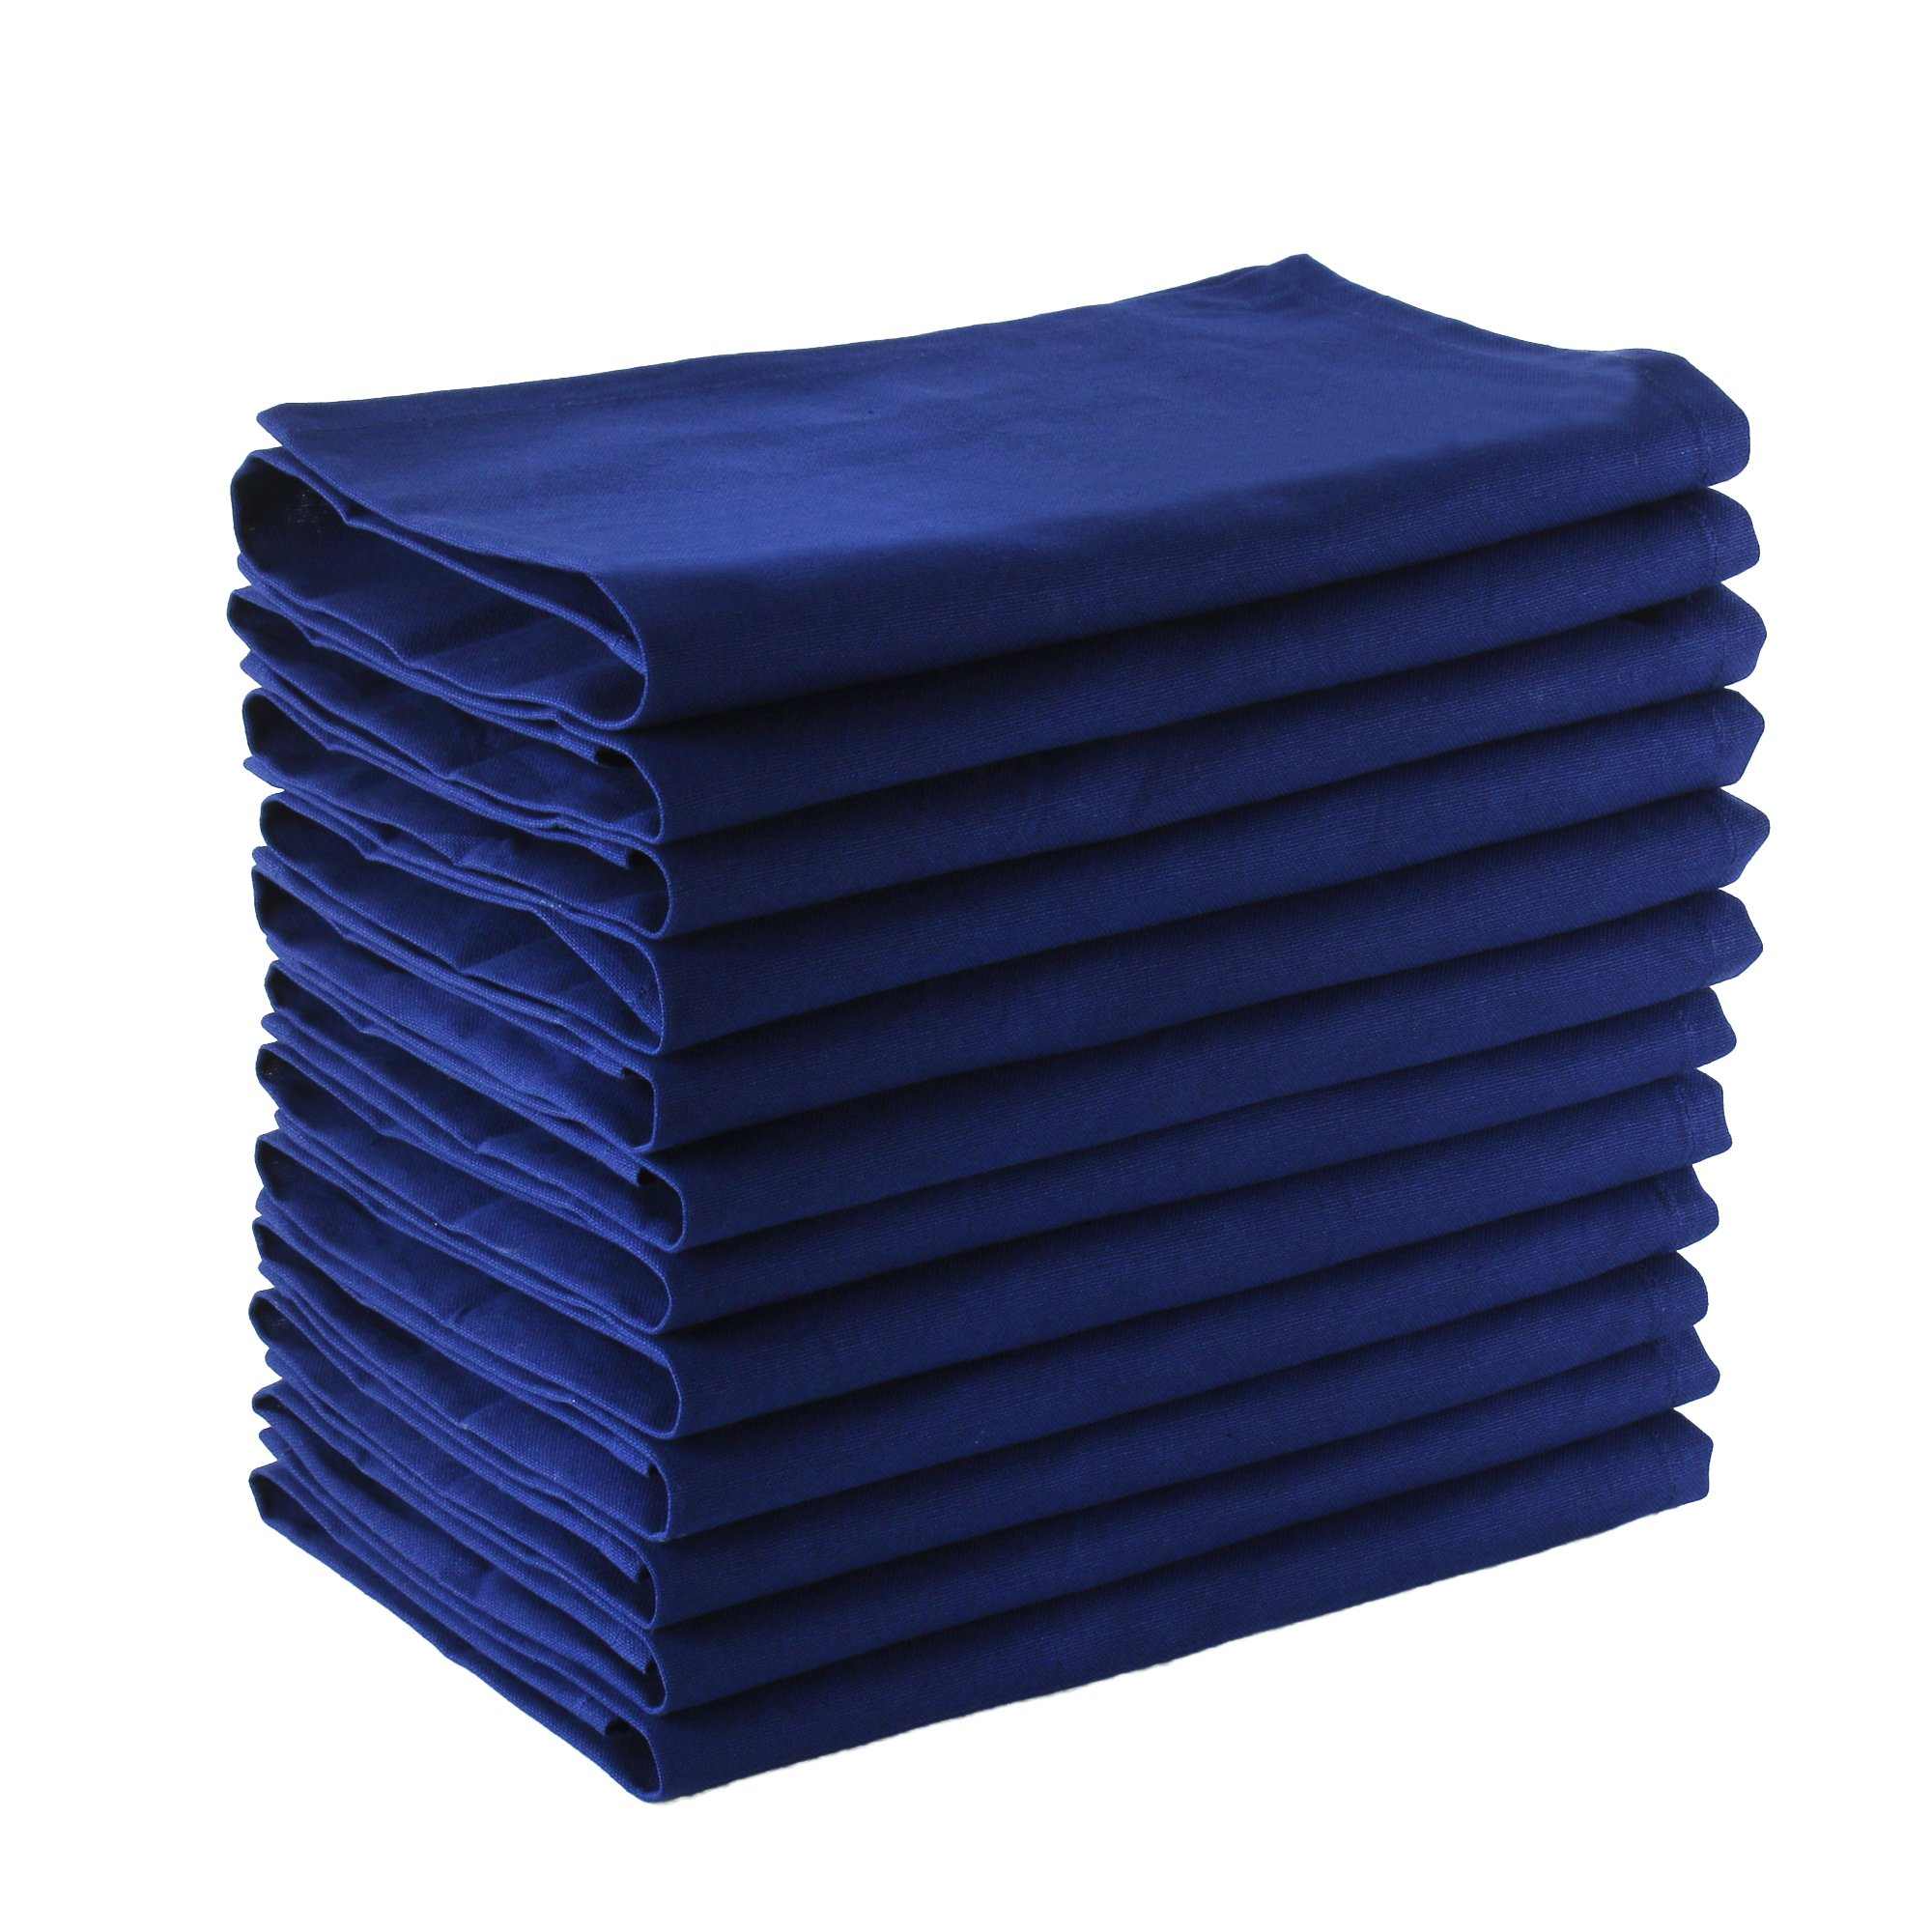 DG COLLECTIONS Cotton Dinner Napkins Navy, Set of 12 (20 x 20 Inches), Over Sized, Embroidery Print, Lint Free, Quick Dry, Hemmed Mitered Corners